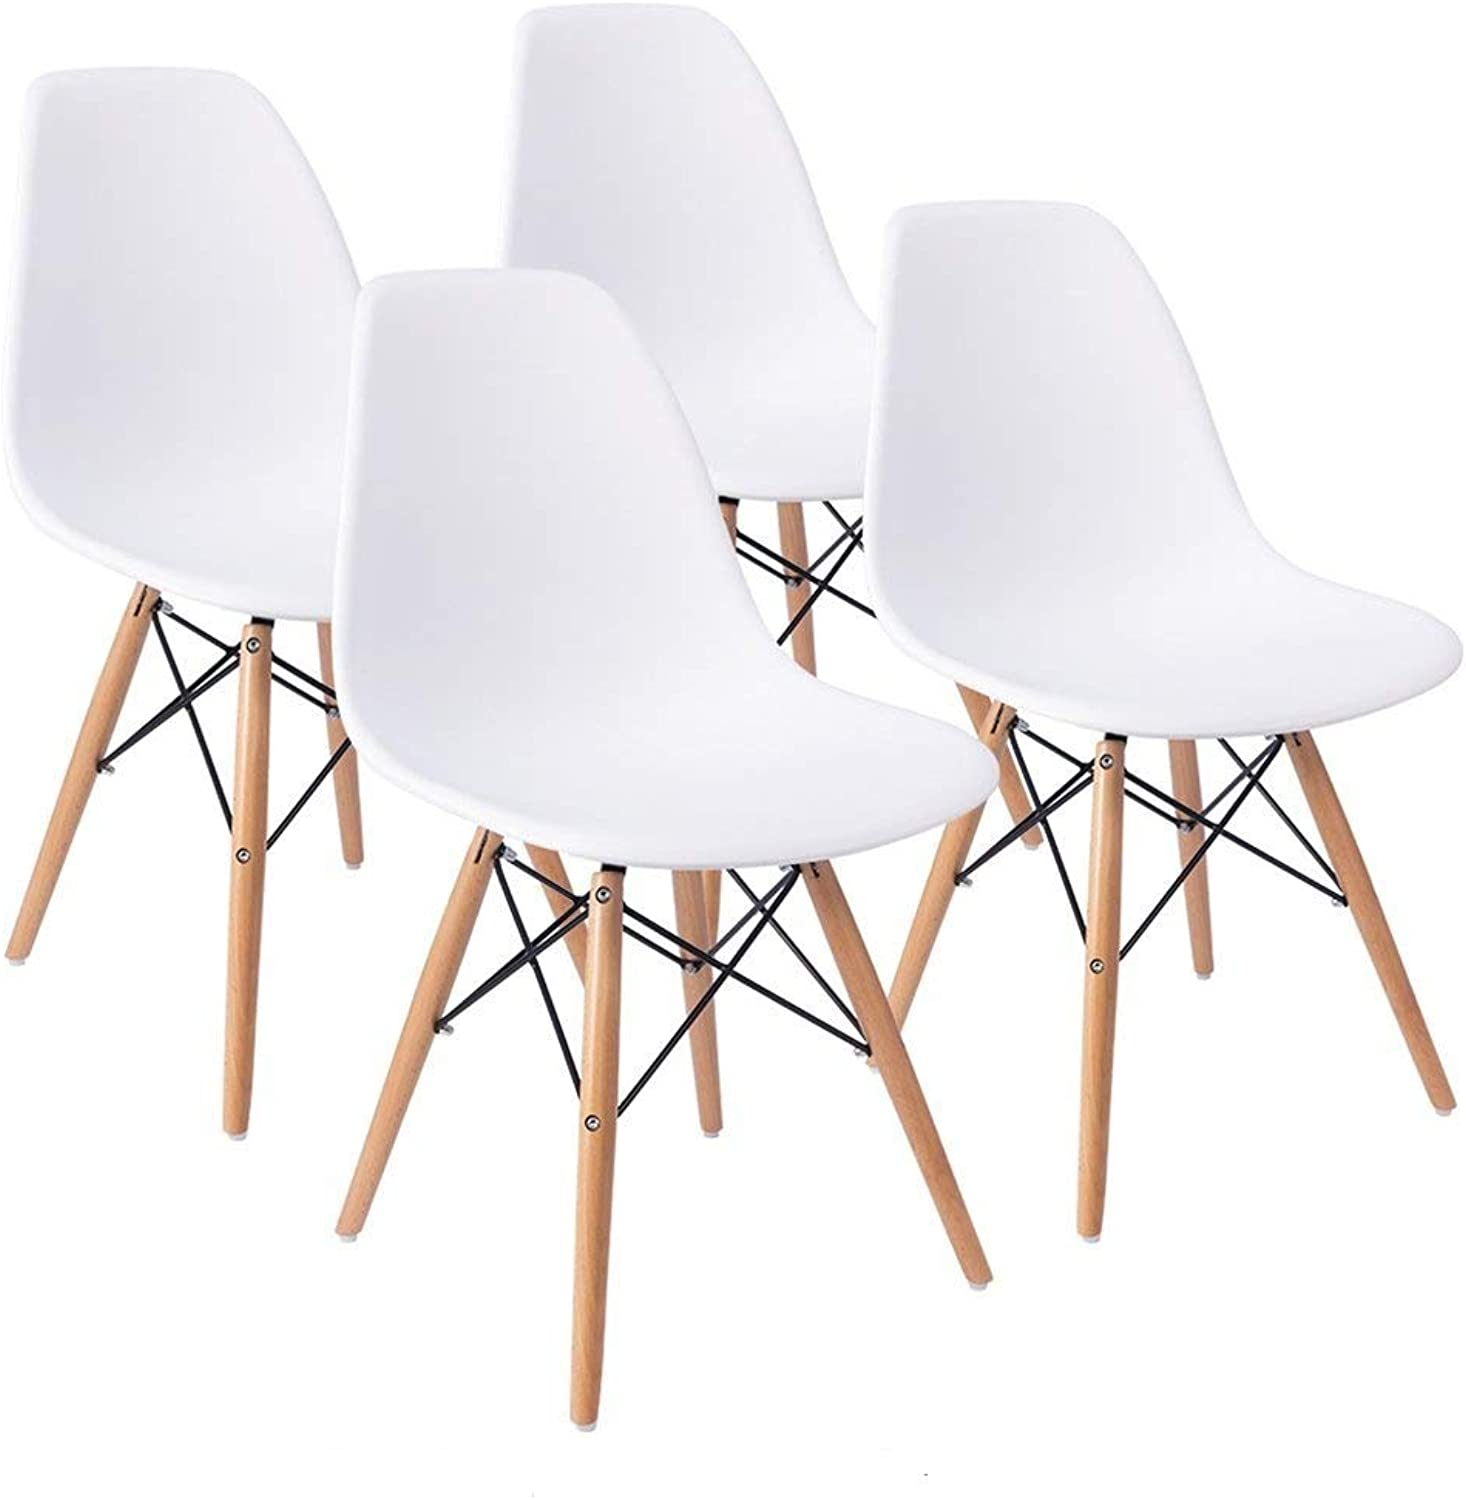 COMFORTA BLE Plus Set of 4 Dining Room Chairs Eiffel DSW Dining Bedroom Kitchen Weiß Retro Plastic Seat and Wooden Legs